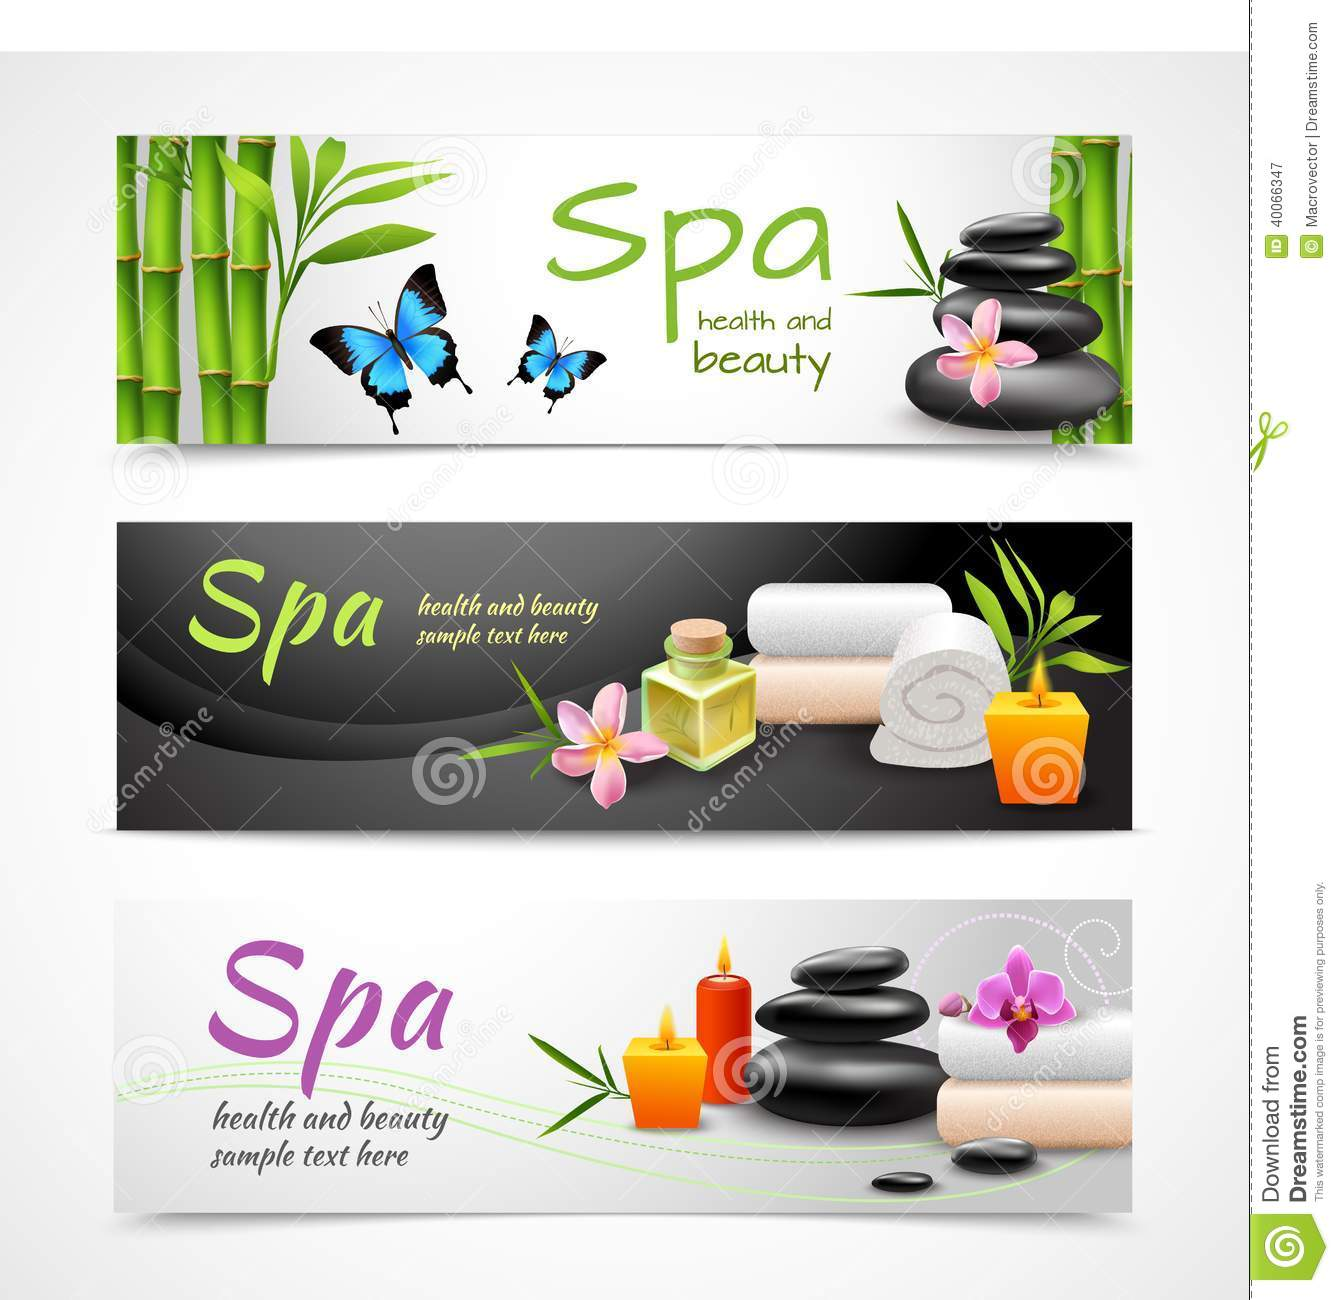 Life Time Fitness Colorado Springs in addition Oac besides Room Types likewise Business Card Portfolio together with 3. on massage therapy layout